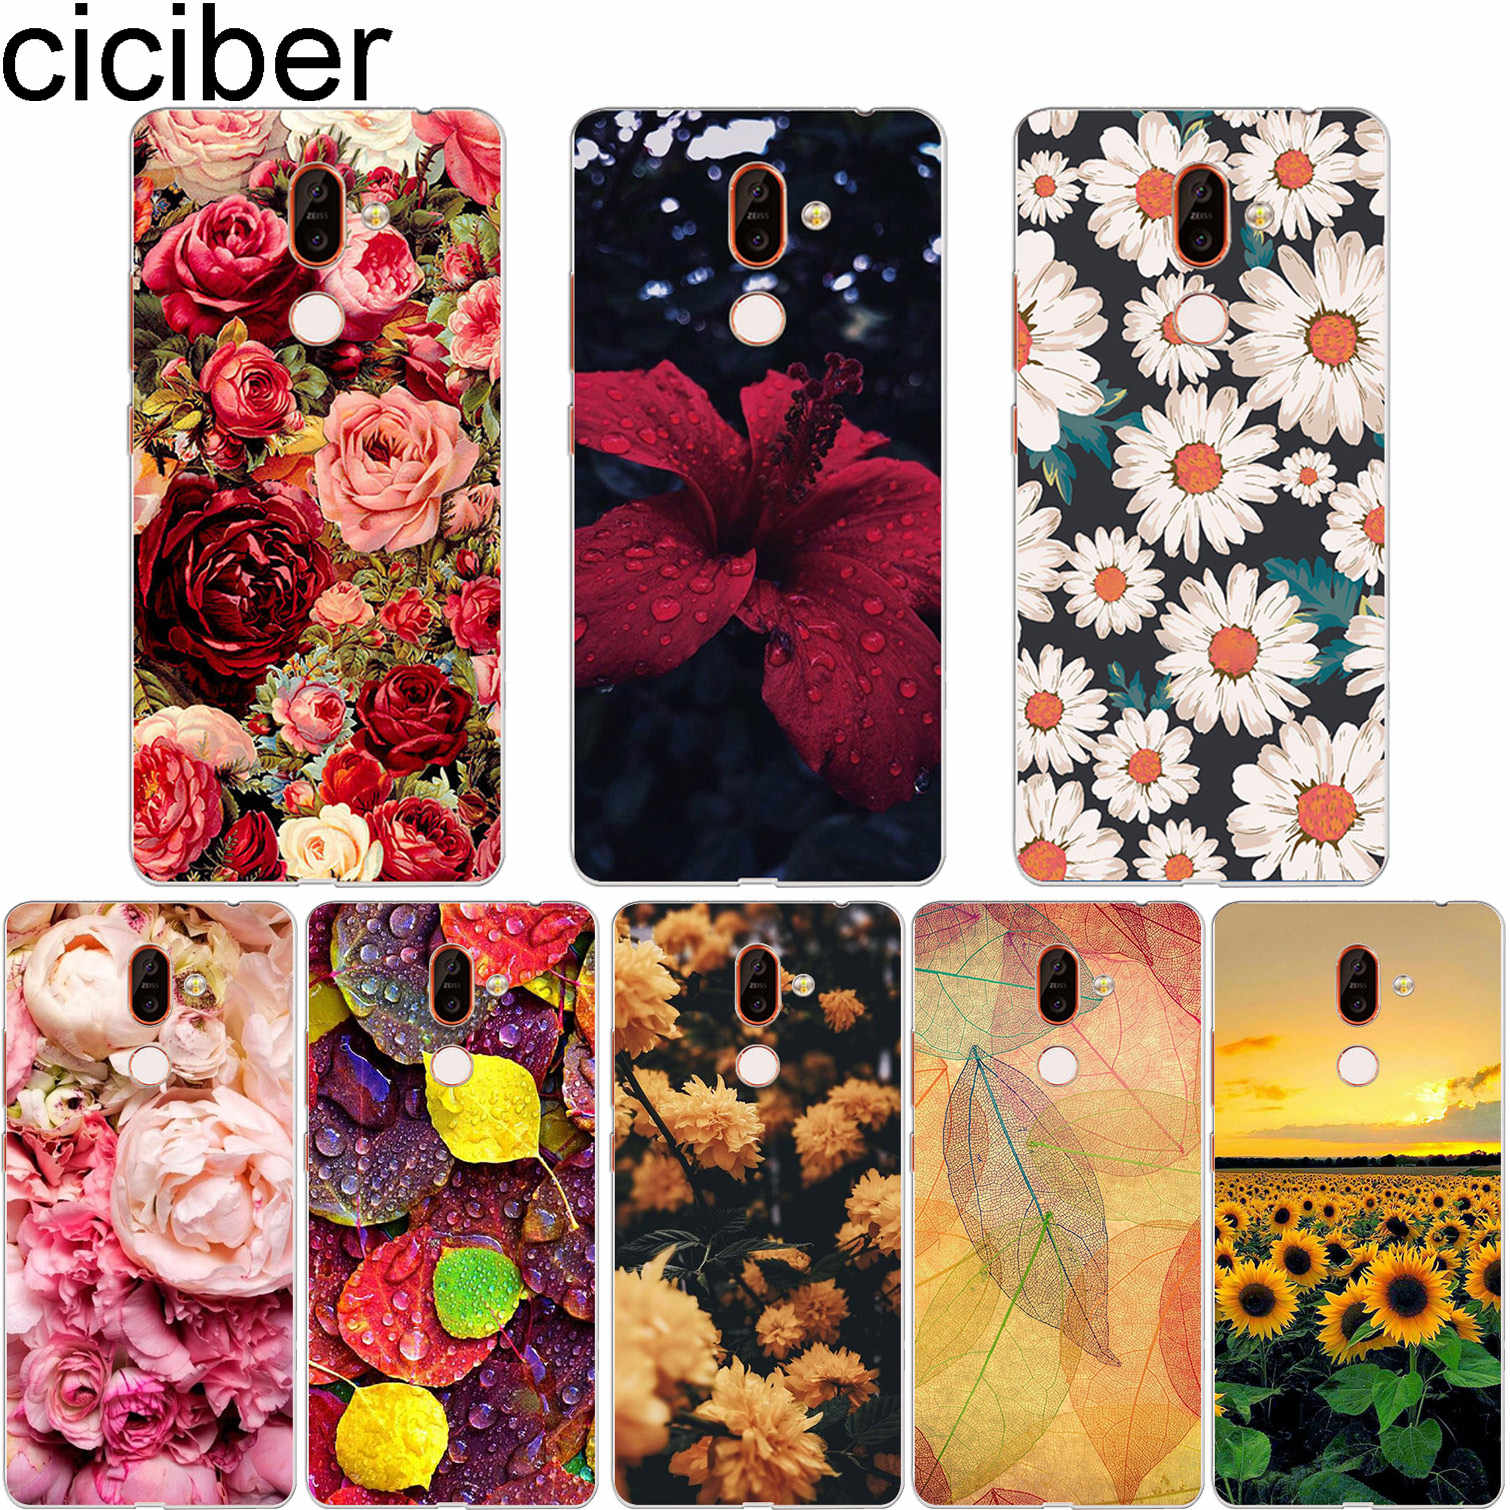 ciciber for Nokia 2.1 5.1 3.1 6.1 7.1 8.1 1 8 7 6 5 3 2 Plus 9 PureView Phone Case For Nokia X7 X6 X5 X3 Soft Coque TPU Flower